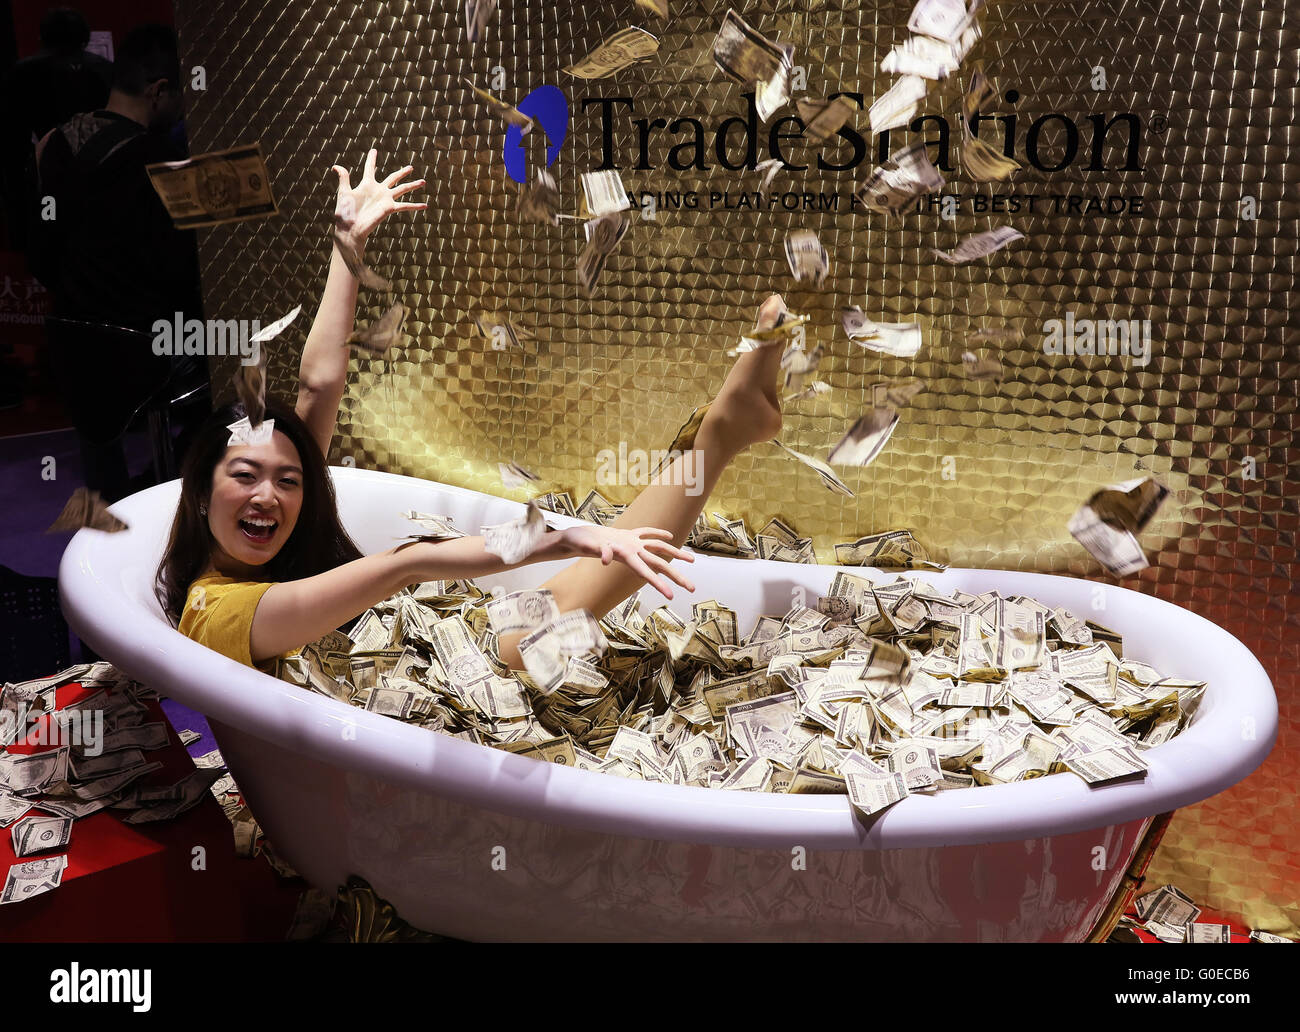 """Chiba, Japan. 30th Apr, 2016. A model scatters toy banknotes in a bath to enjoy feelong of billionaires at a booth of online security company Monex during the Niconico Chokaigi in Chiba on Saturday, April 30, 2016. Some 150,000 visitors enjoyed over 100 booths including games, hobbies, sports, politics as well as Japan's sub cultures at the two-day offline meeting sponsored by Japan's video sharing website """"Niconico Douga"""". © Yoshio Tsunoda/AFLO/Alamy Live News Stock Photo"""